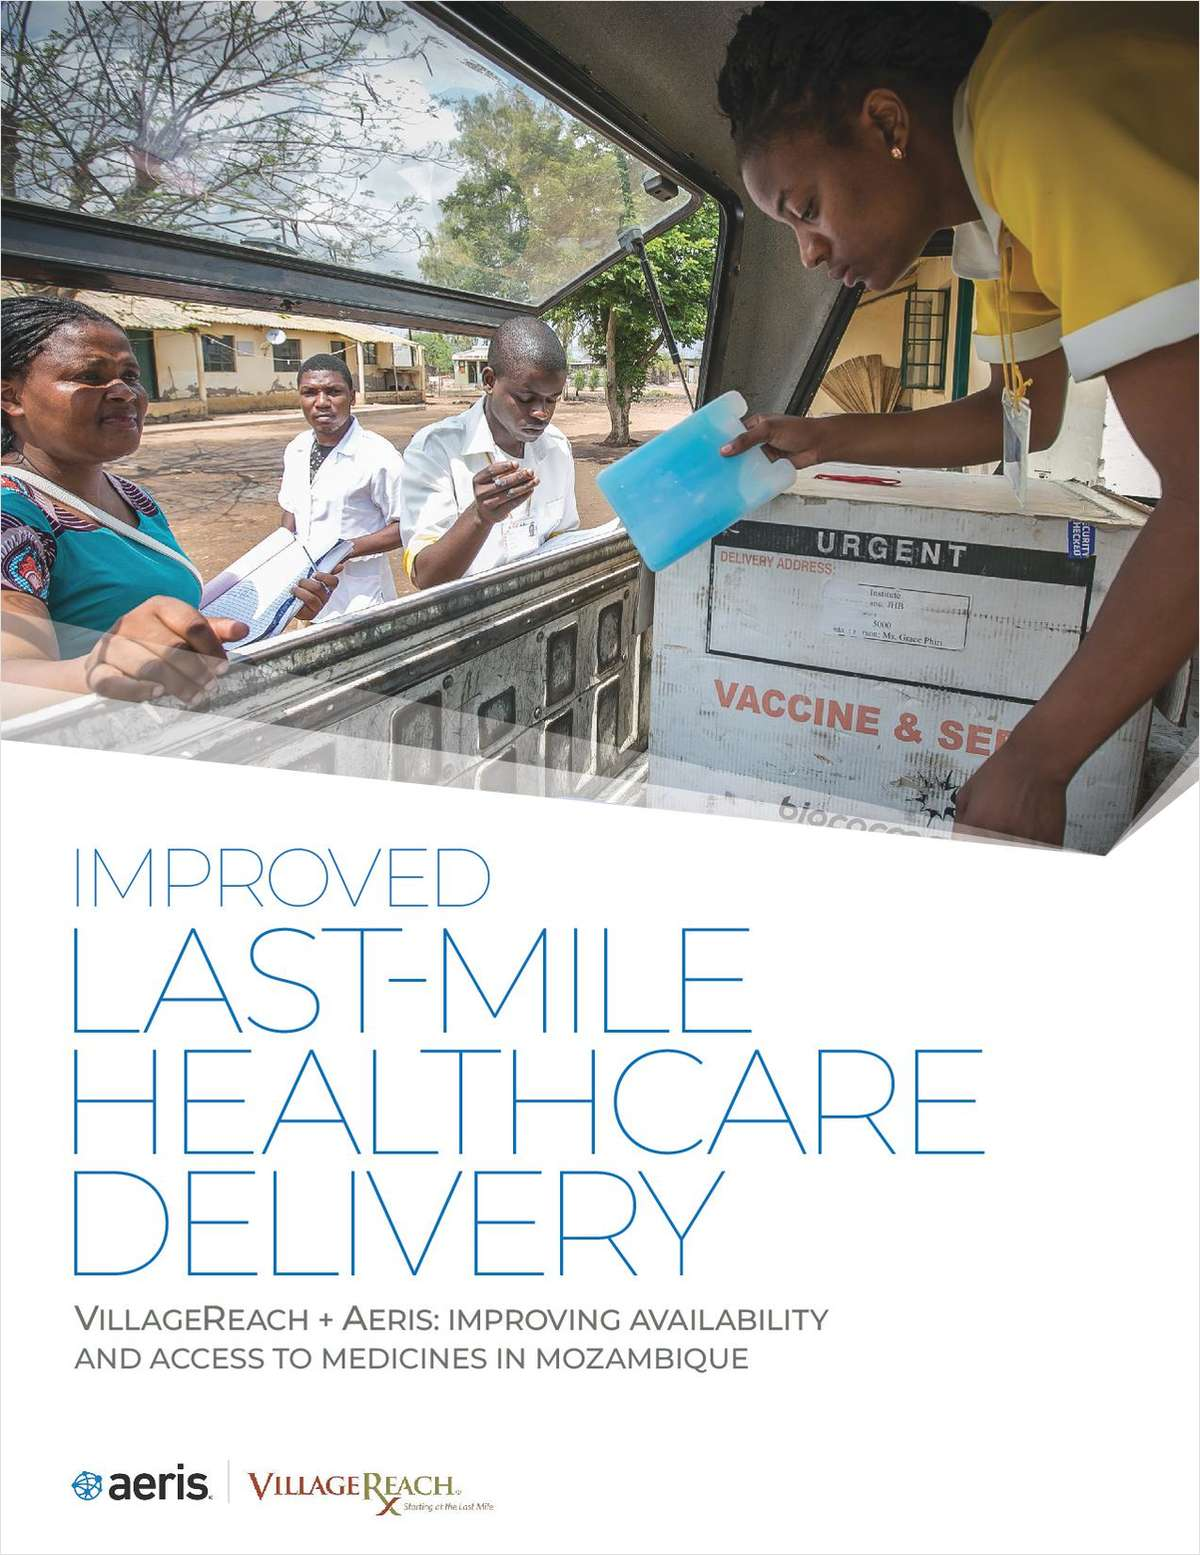 VillageReach + Aeris: Improving Availability and Access to Medicines to Mozambique